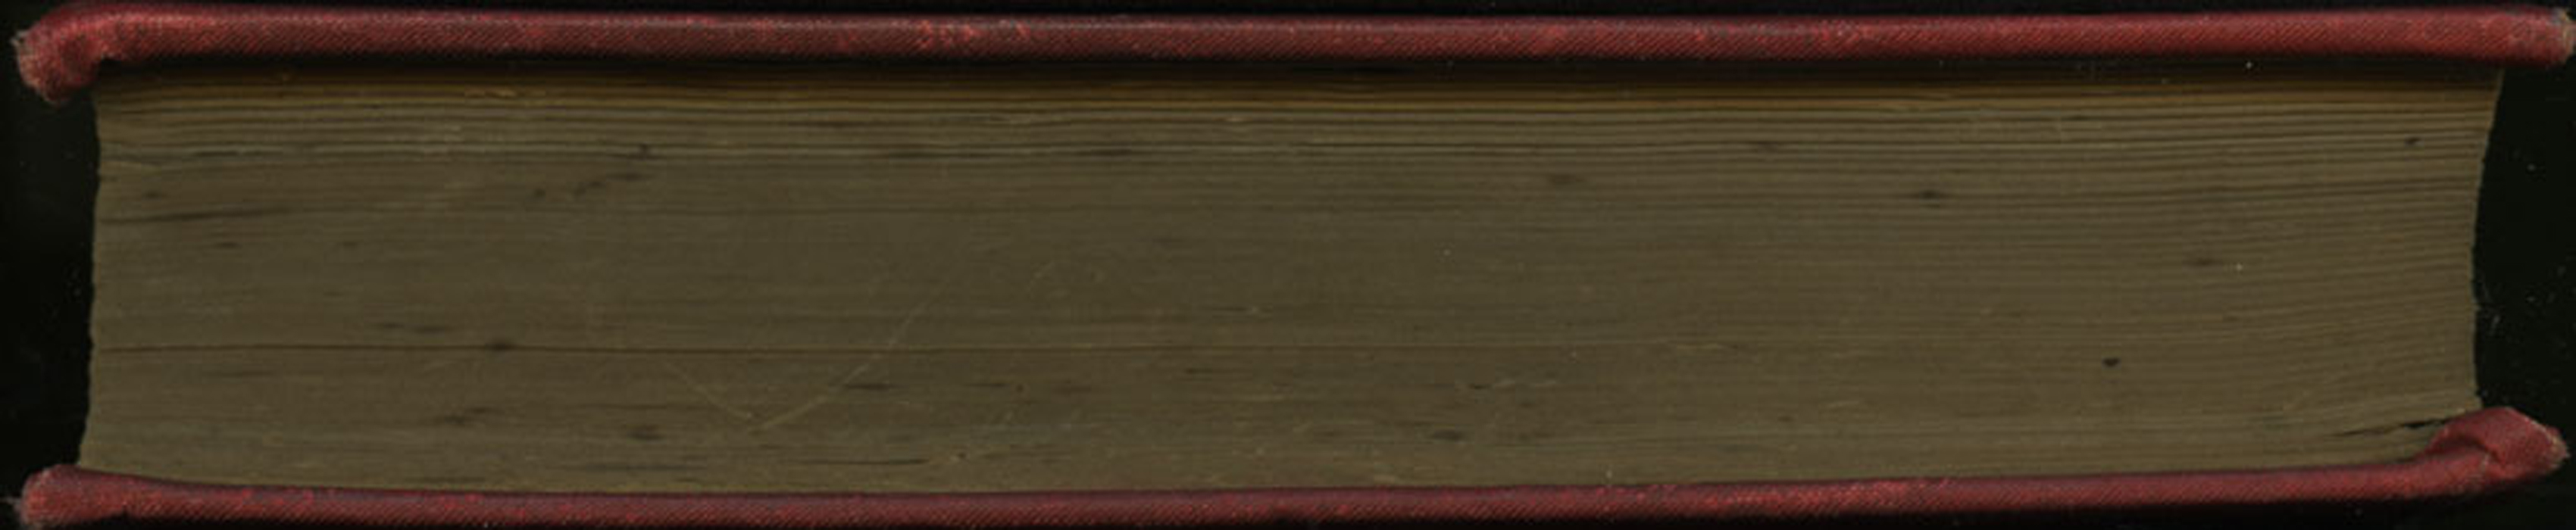 Fore-edge of [1896] James Nisbet Edition